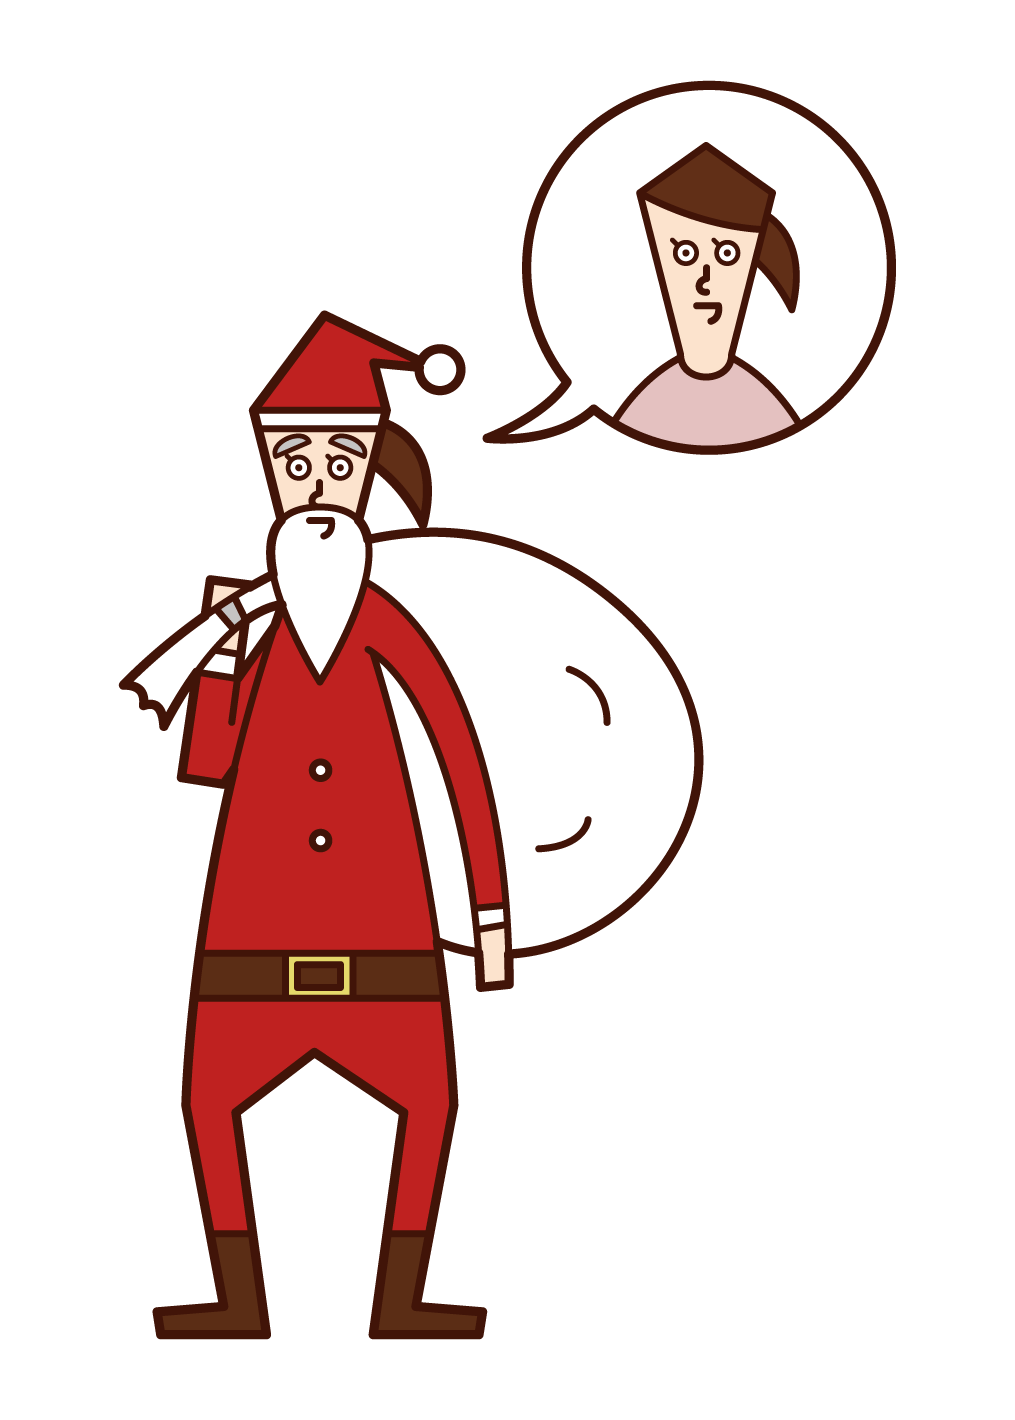 Illustration of Santa Claus (Woman) disguised by her mother